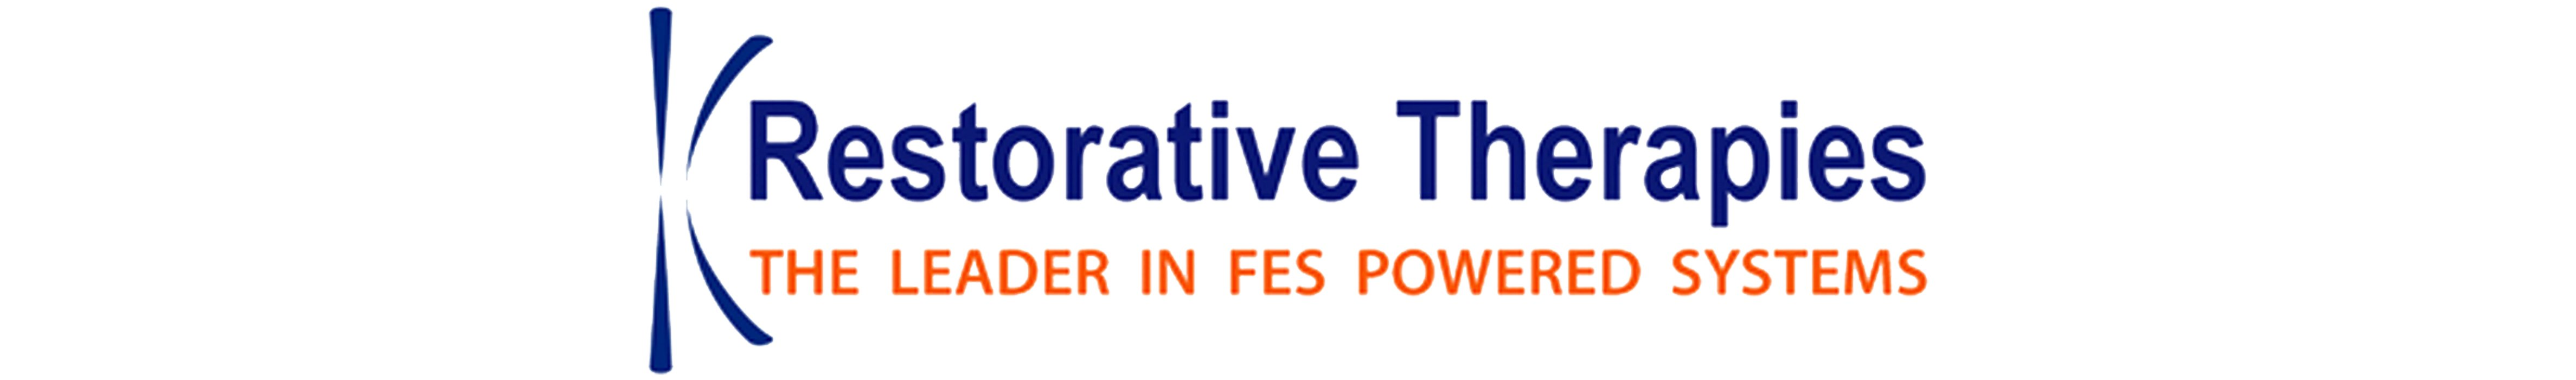 Logo for the brand Restorative Therapies